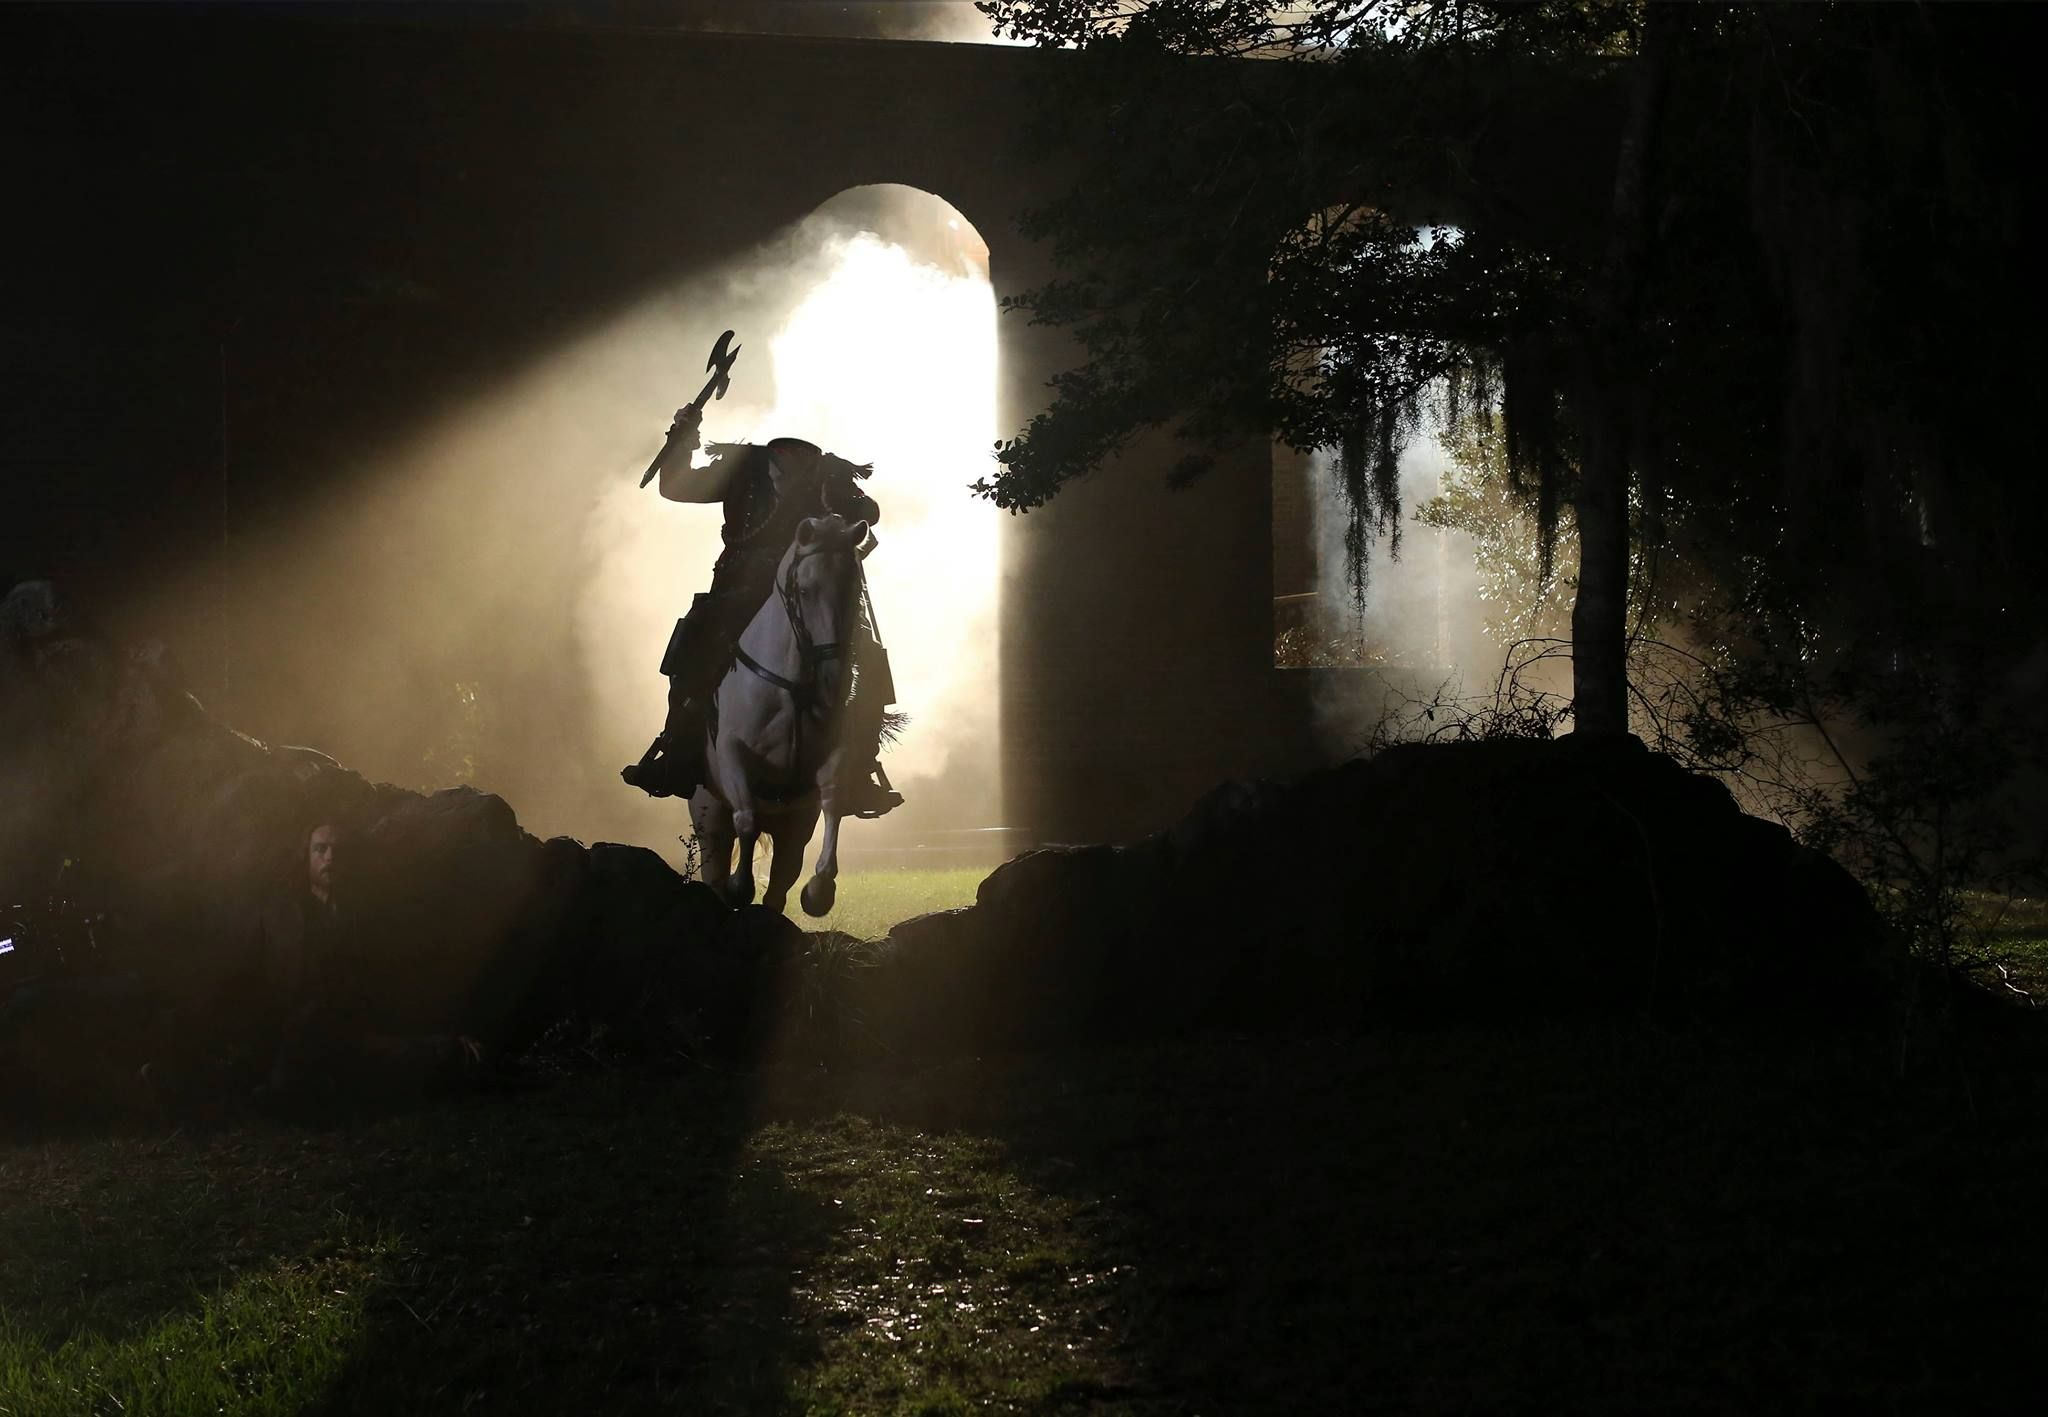 The Horseman rides again at 8pm, only on FOX.  Can we count on you to be in Sleepy Hollow tonight?